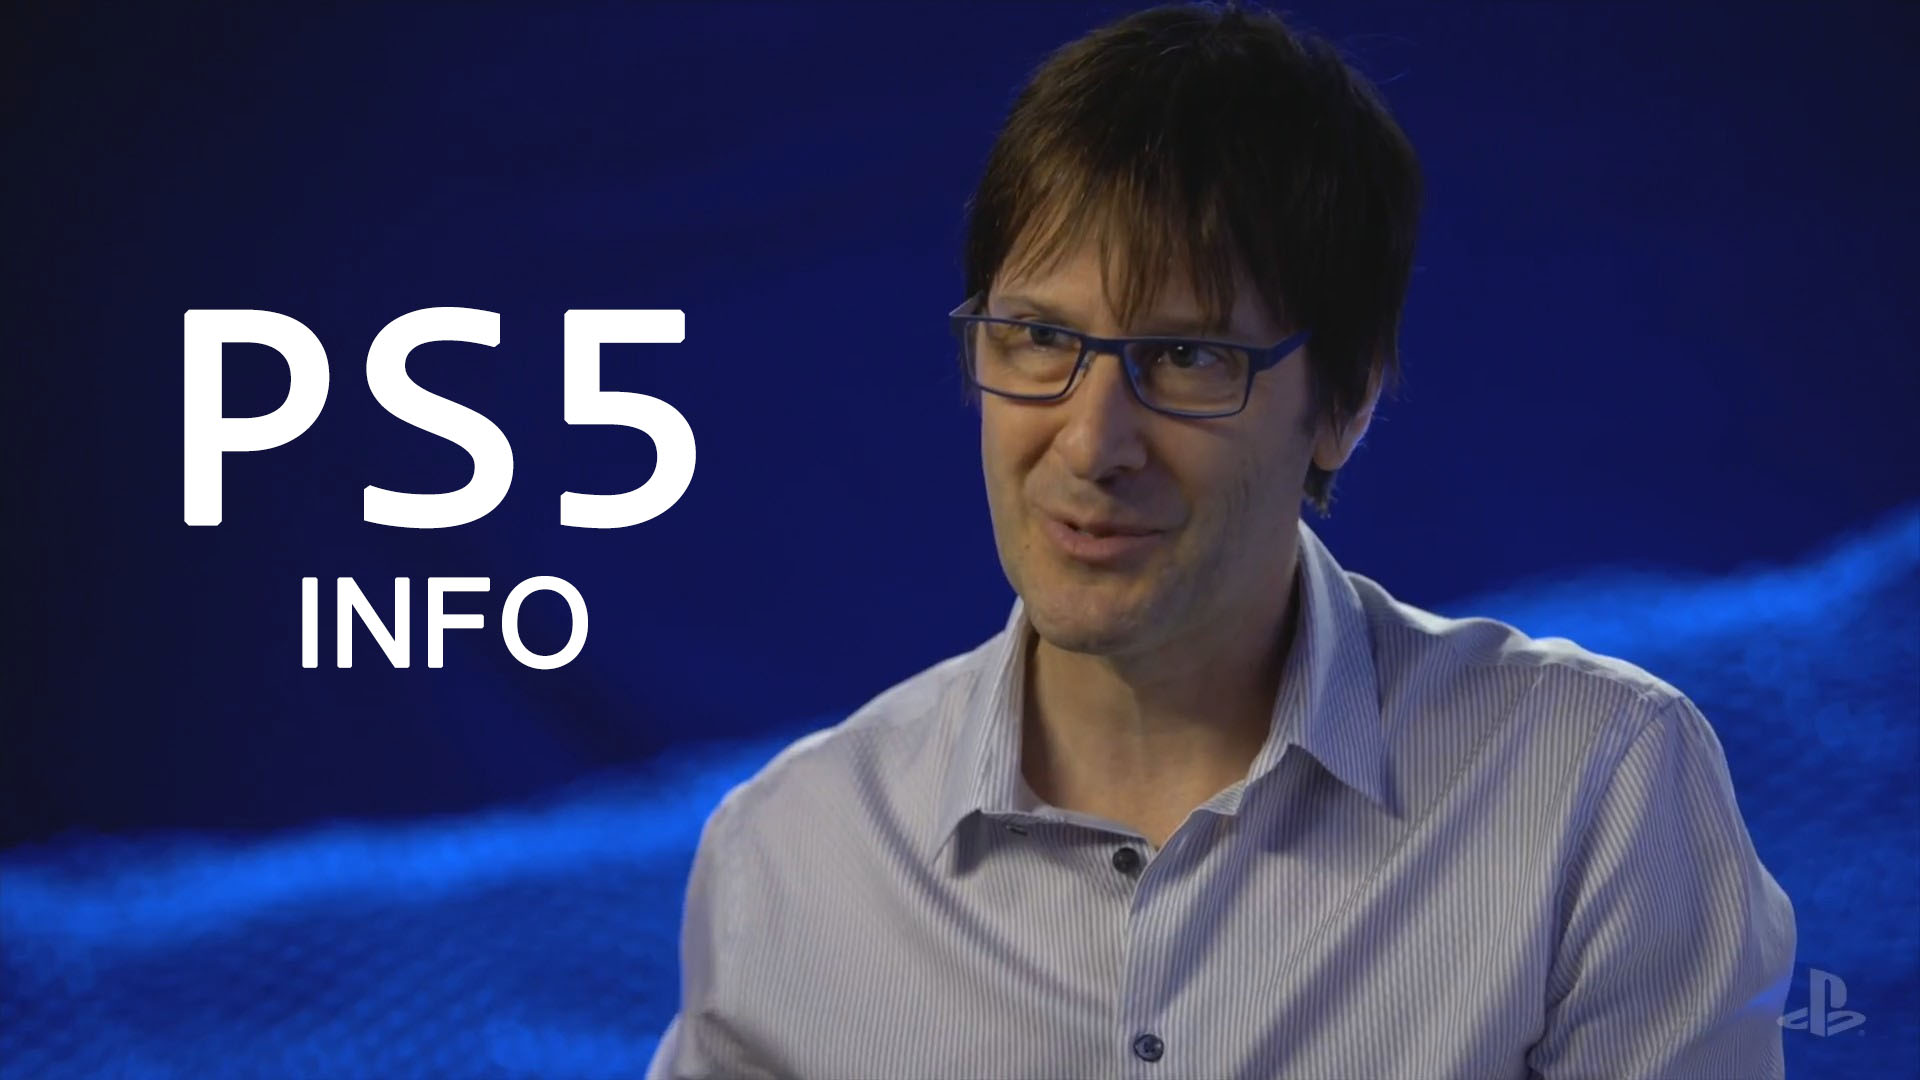 PlayStation 5 Info Mark Cerny